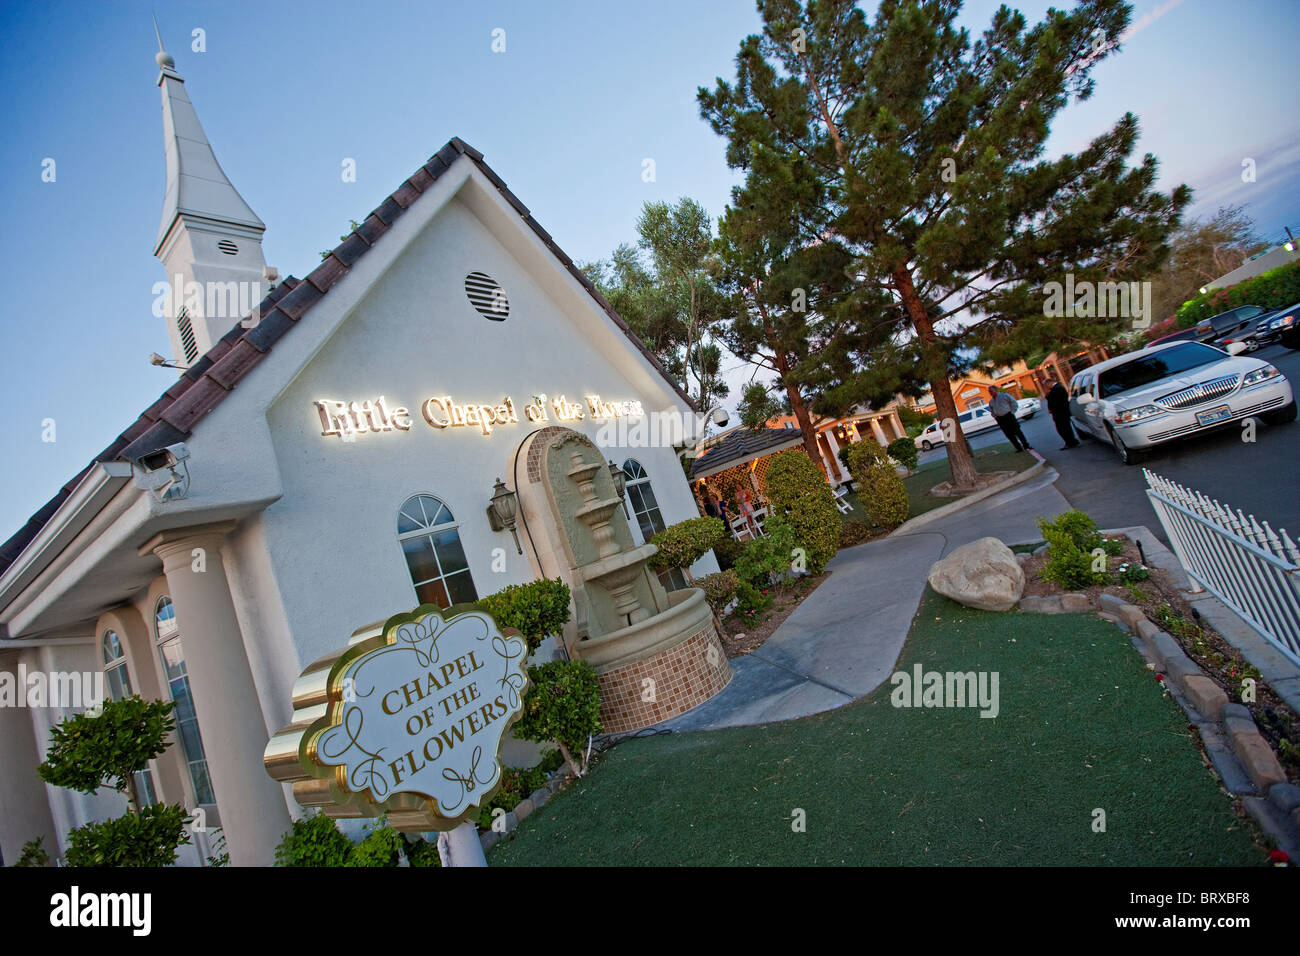 Chapel of the flowers Wedding chapel marriage Las Vegas Strip Stock